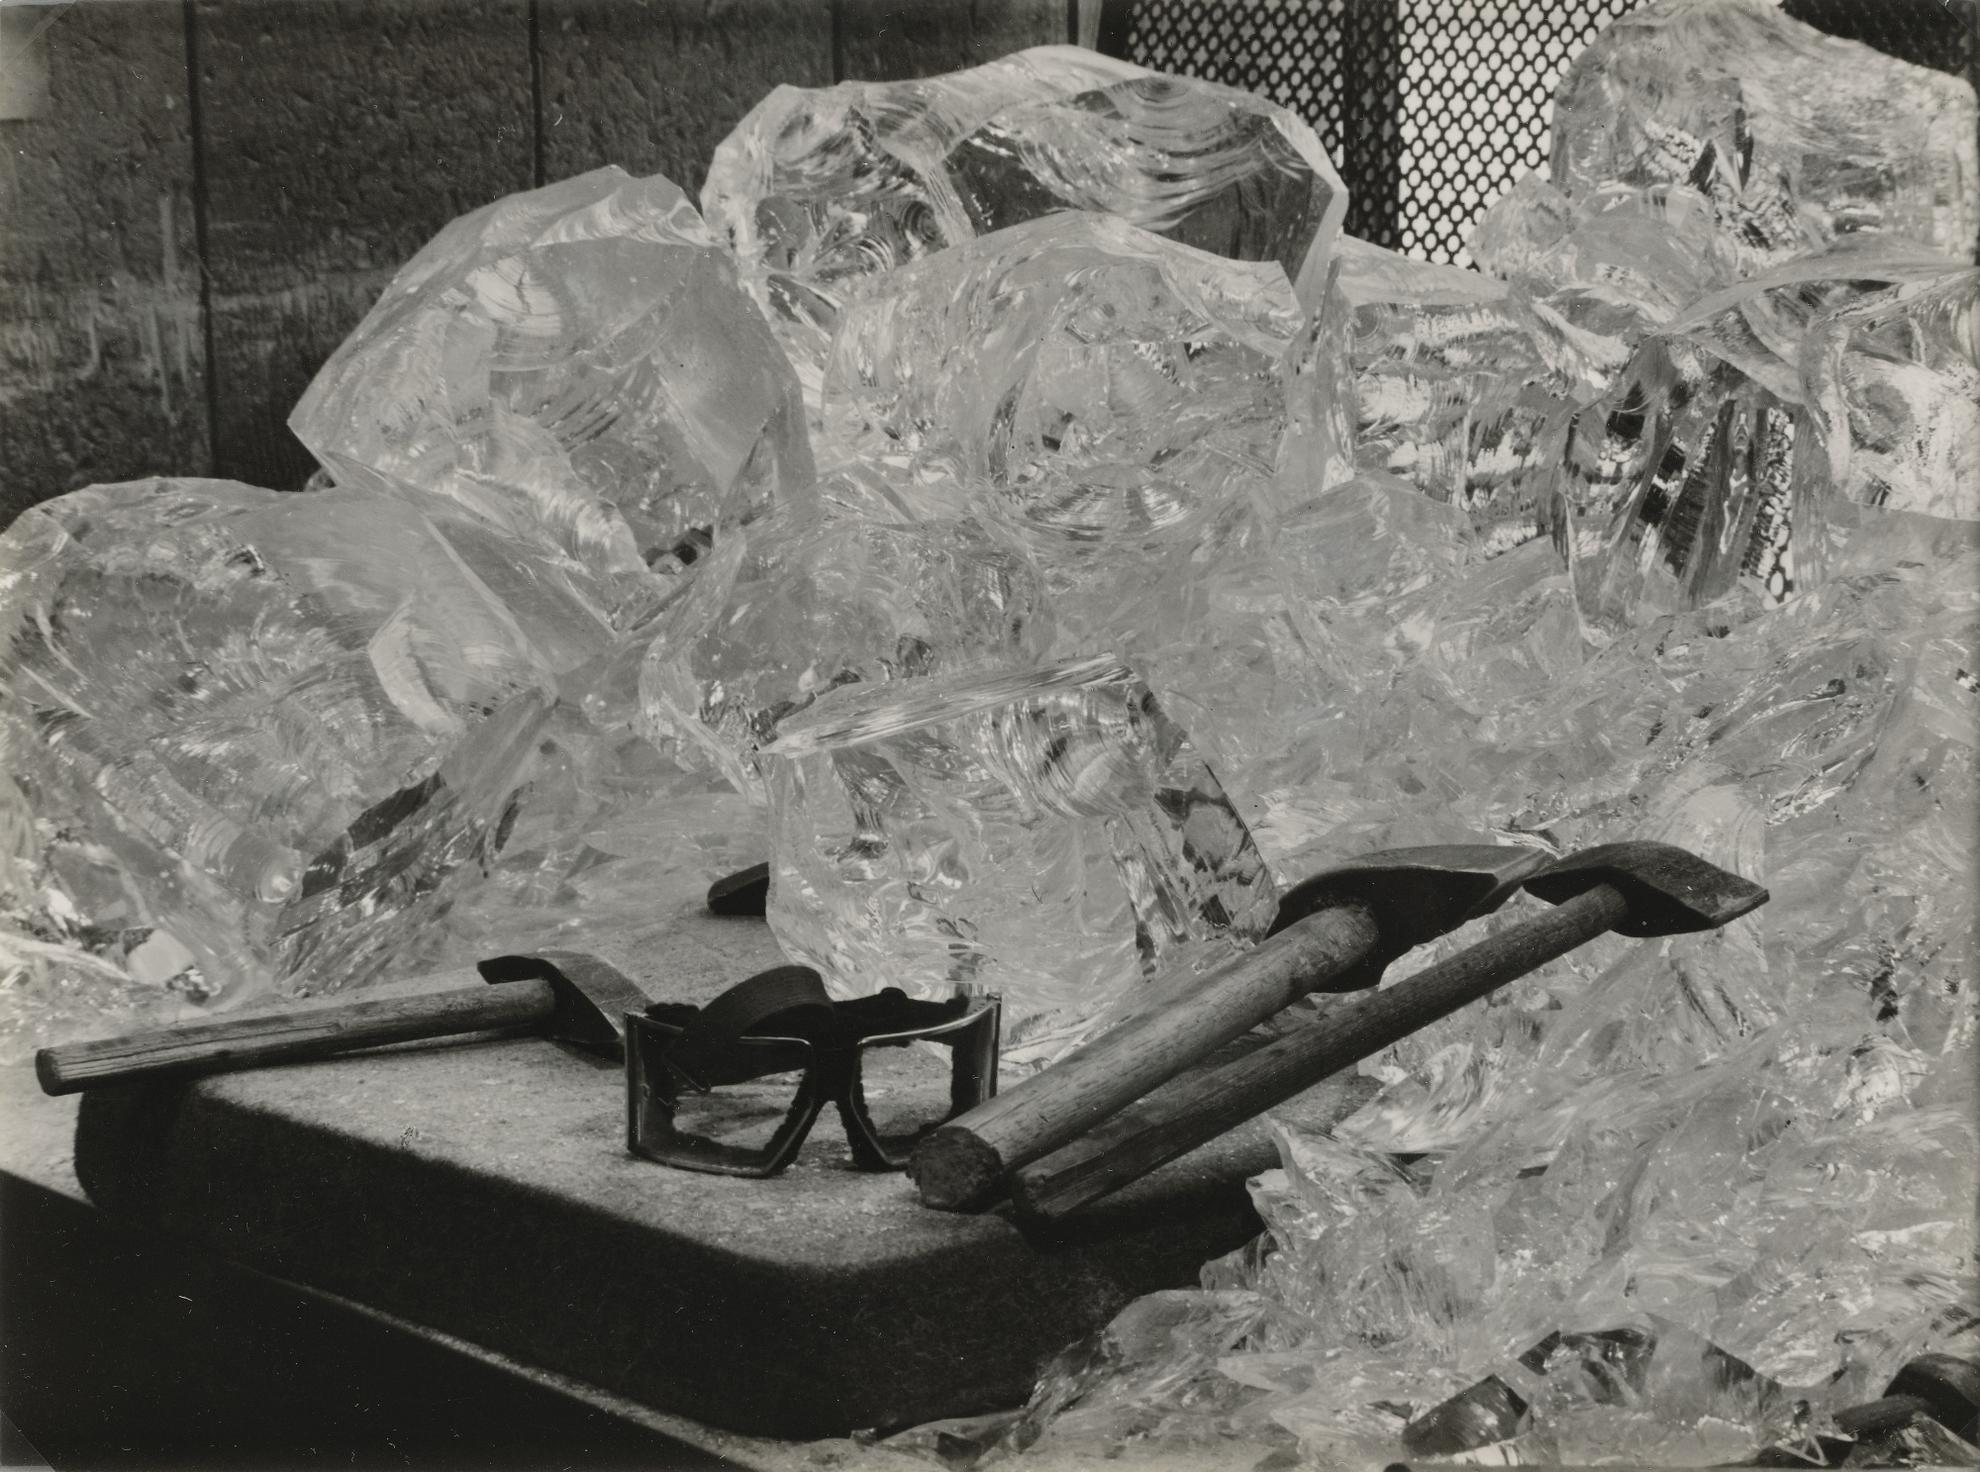 Albert Renger-Patzsch-Manufacture De Verre A Optique-1950